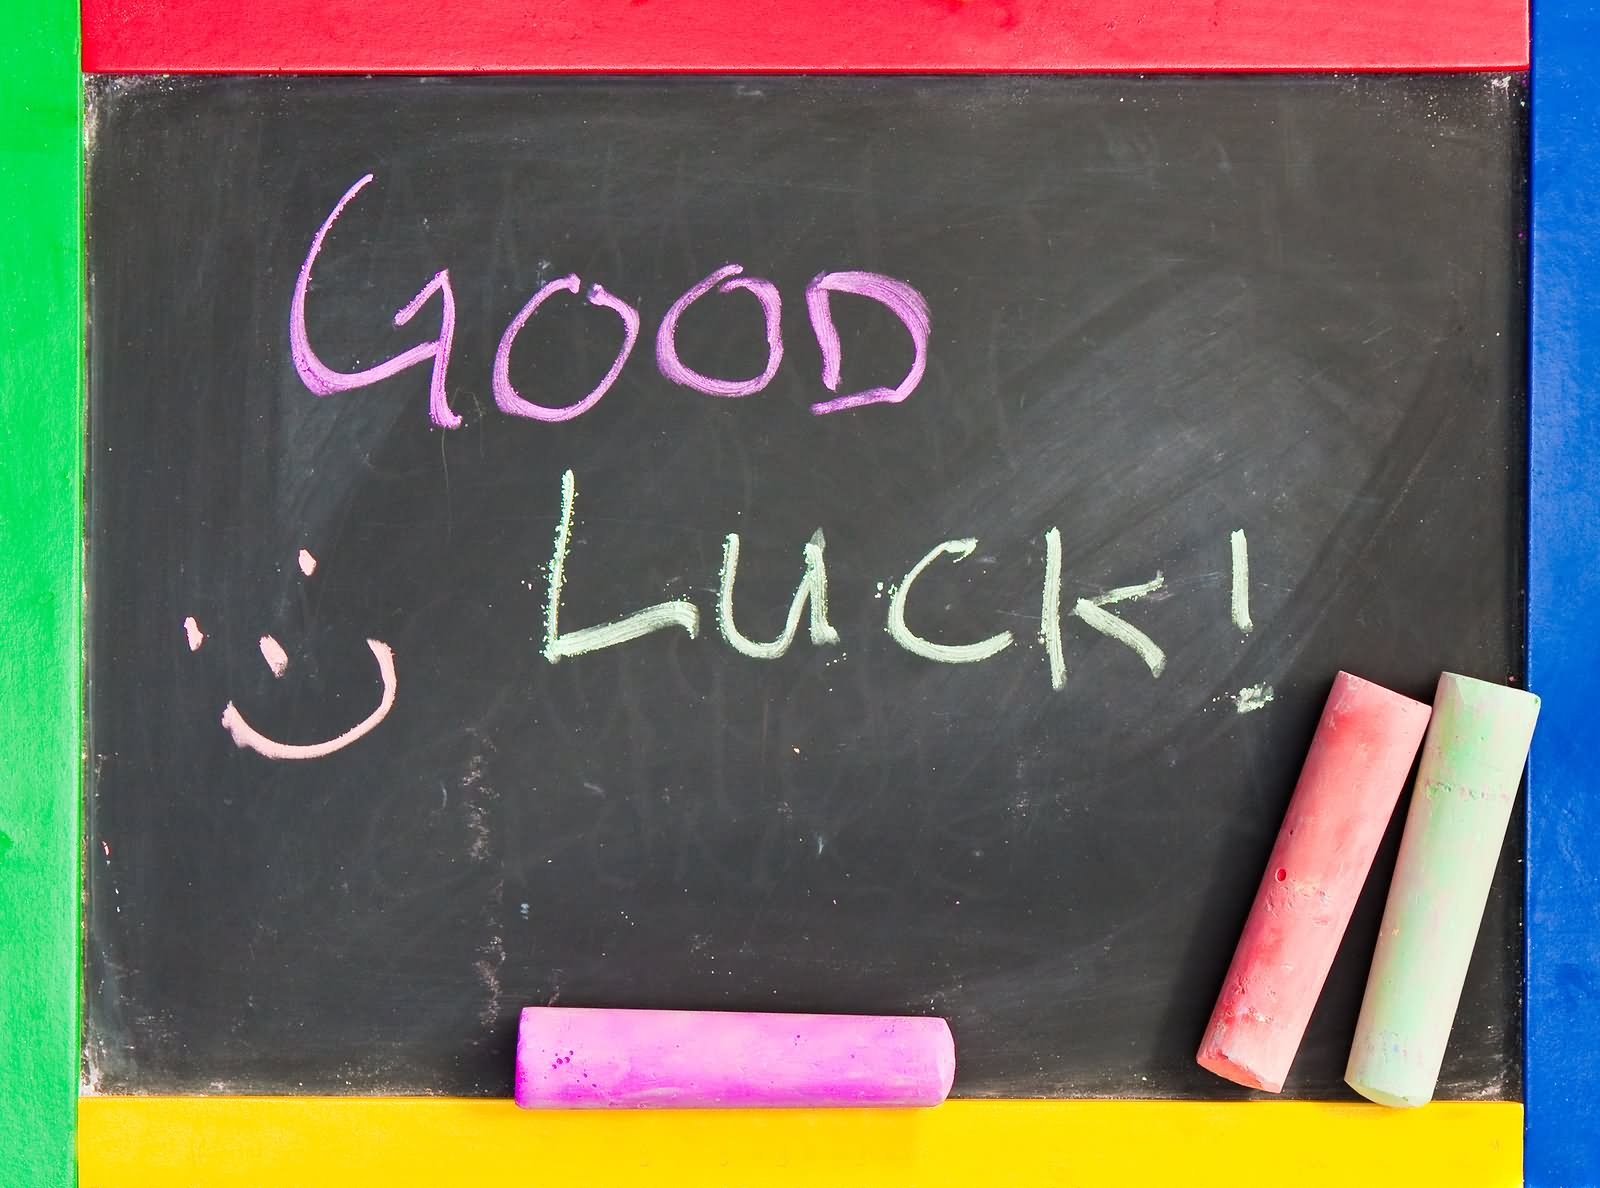 40 Wonderful Good Luck Wishes For Exam,Work Or Etc